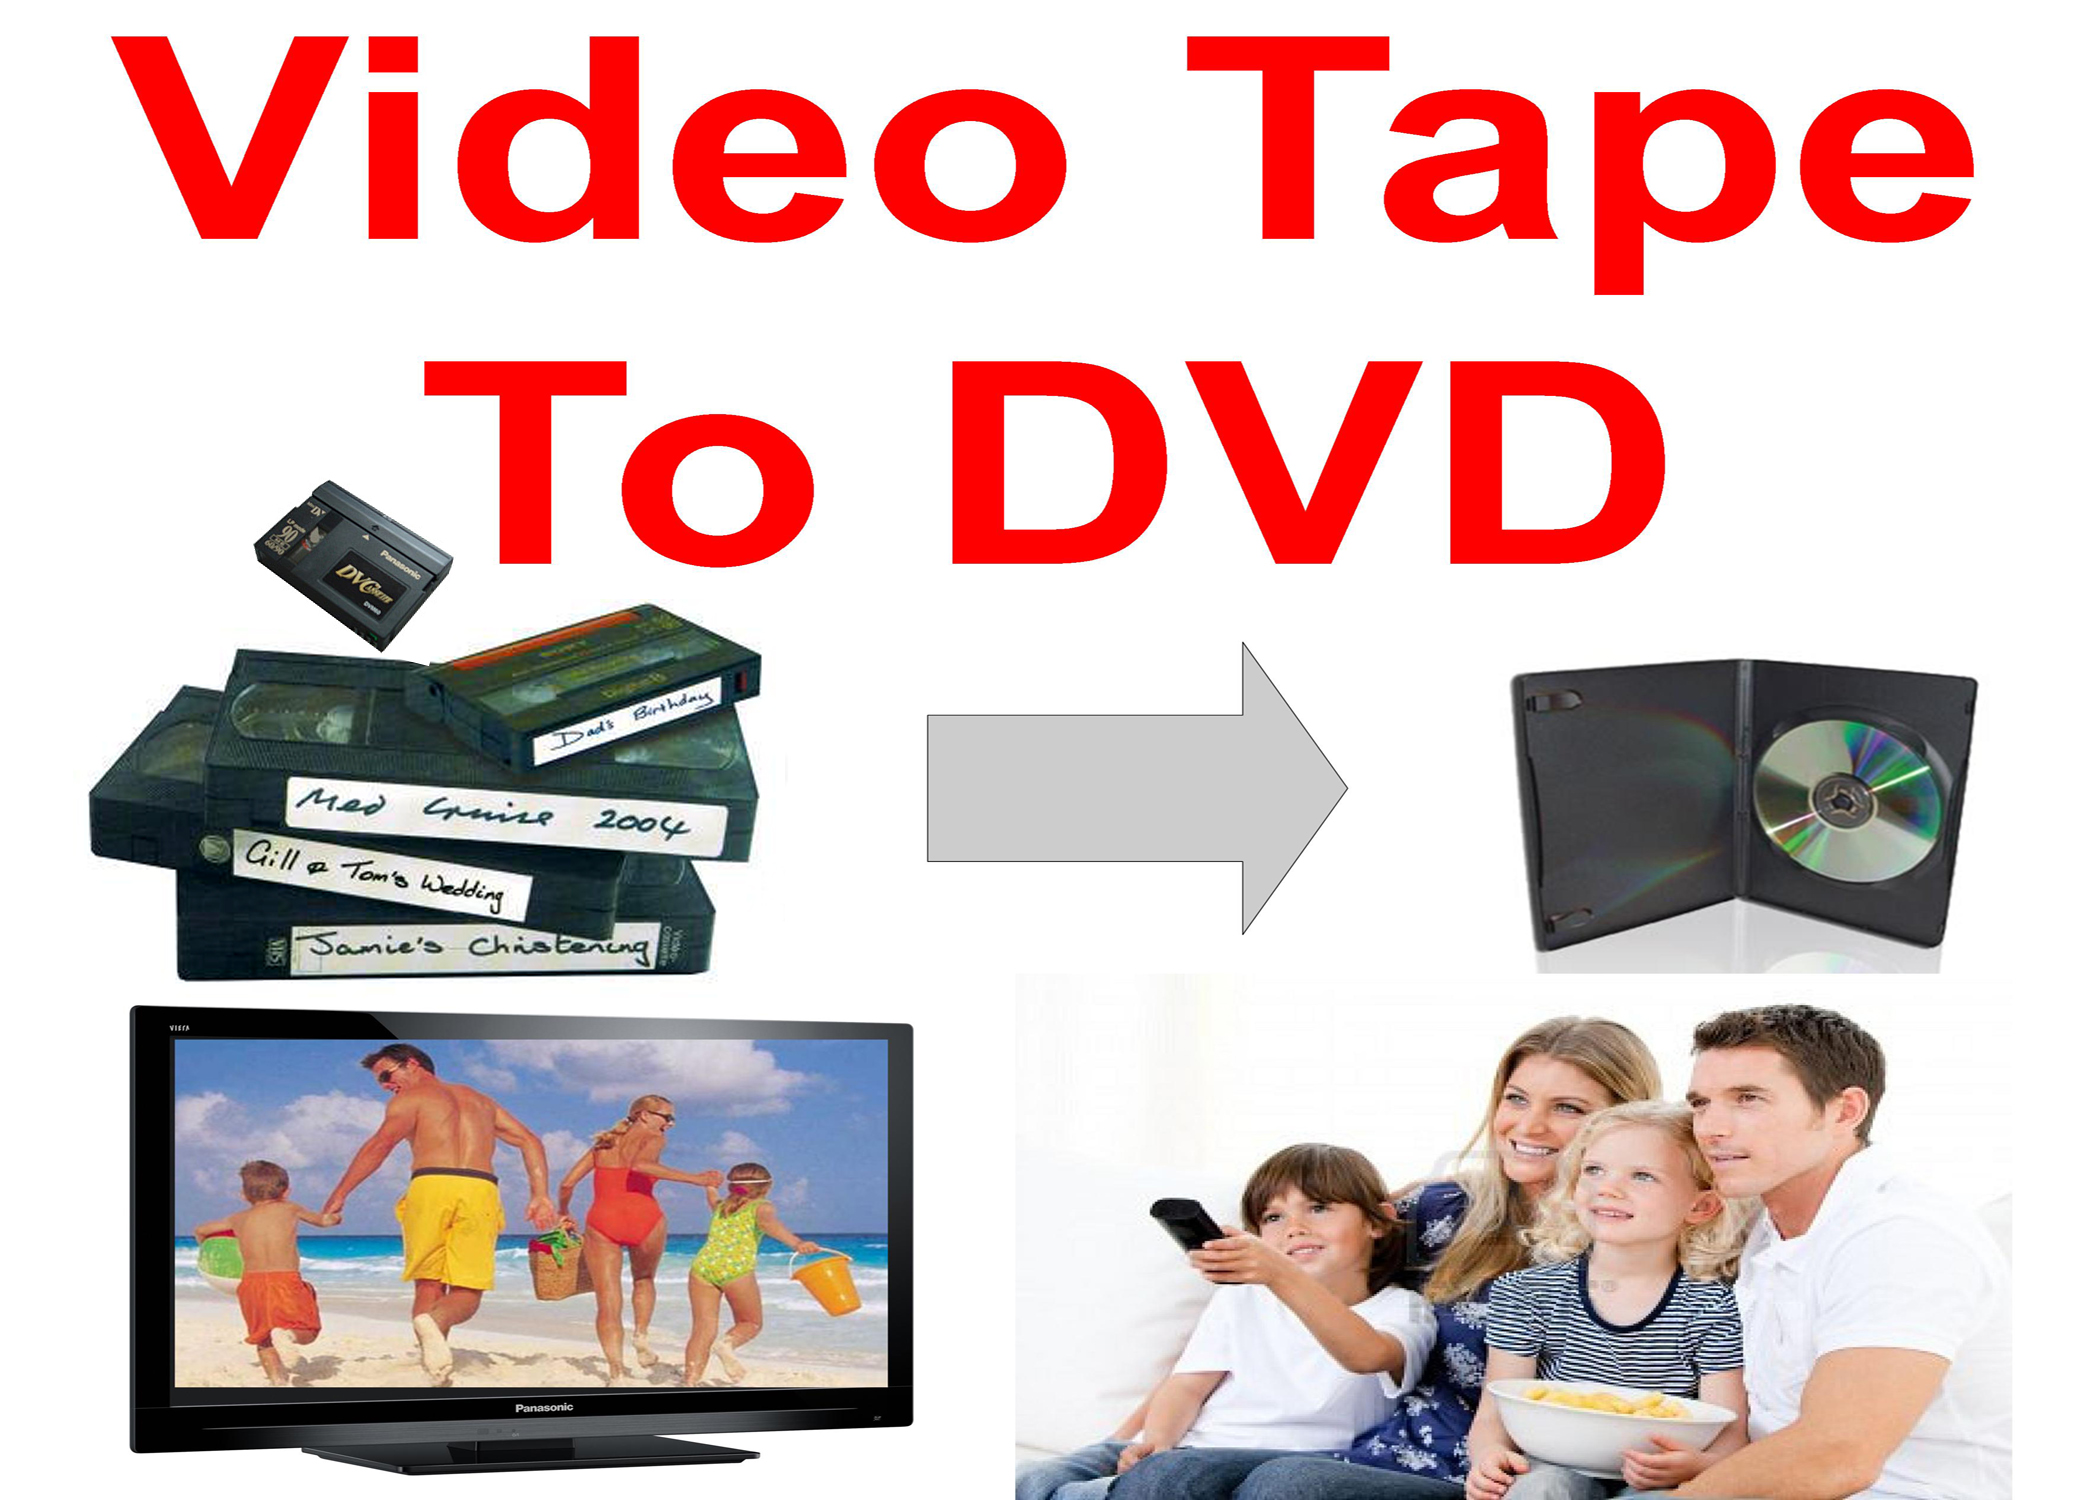 Transferring video tapes to DVD before it's too late